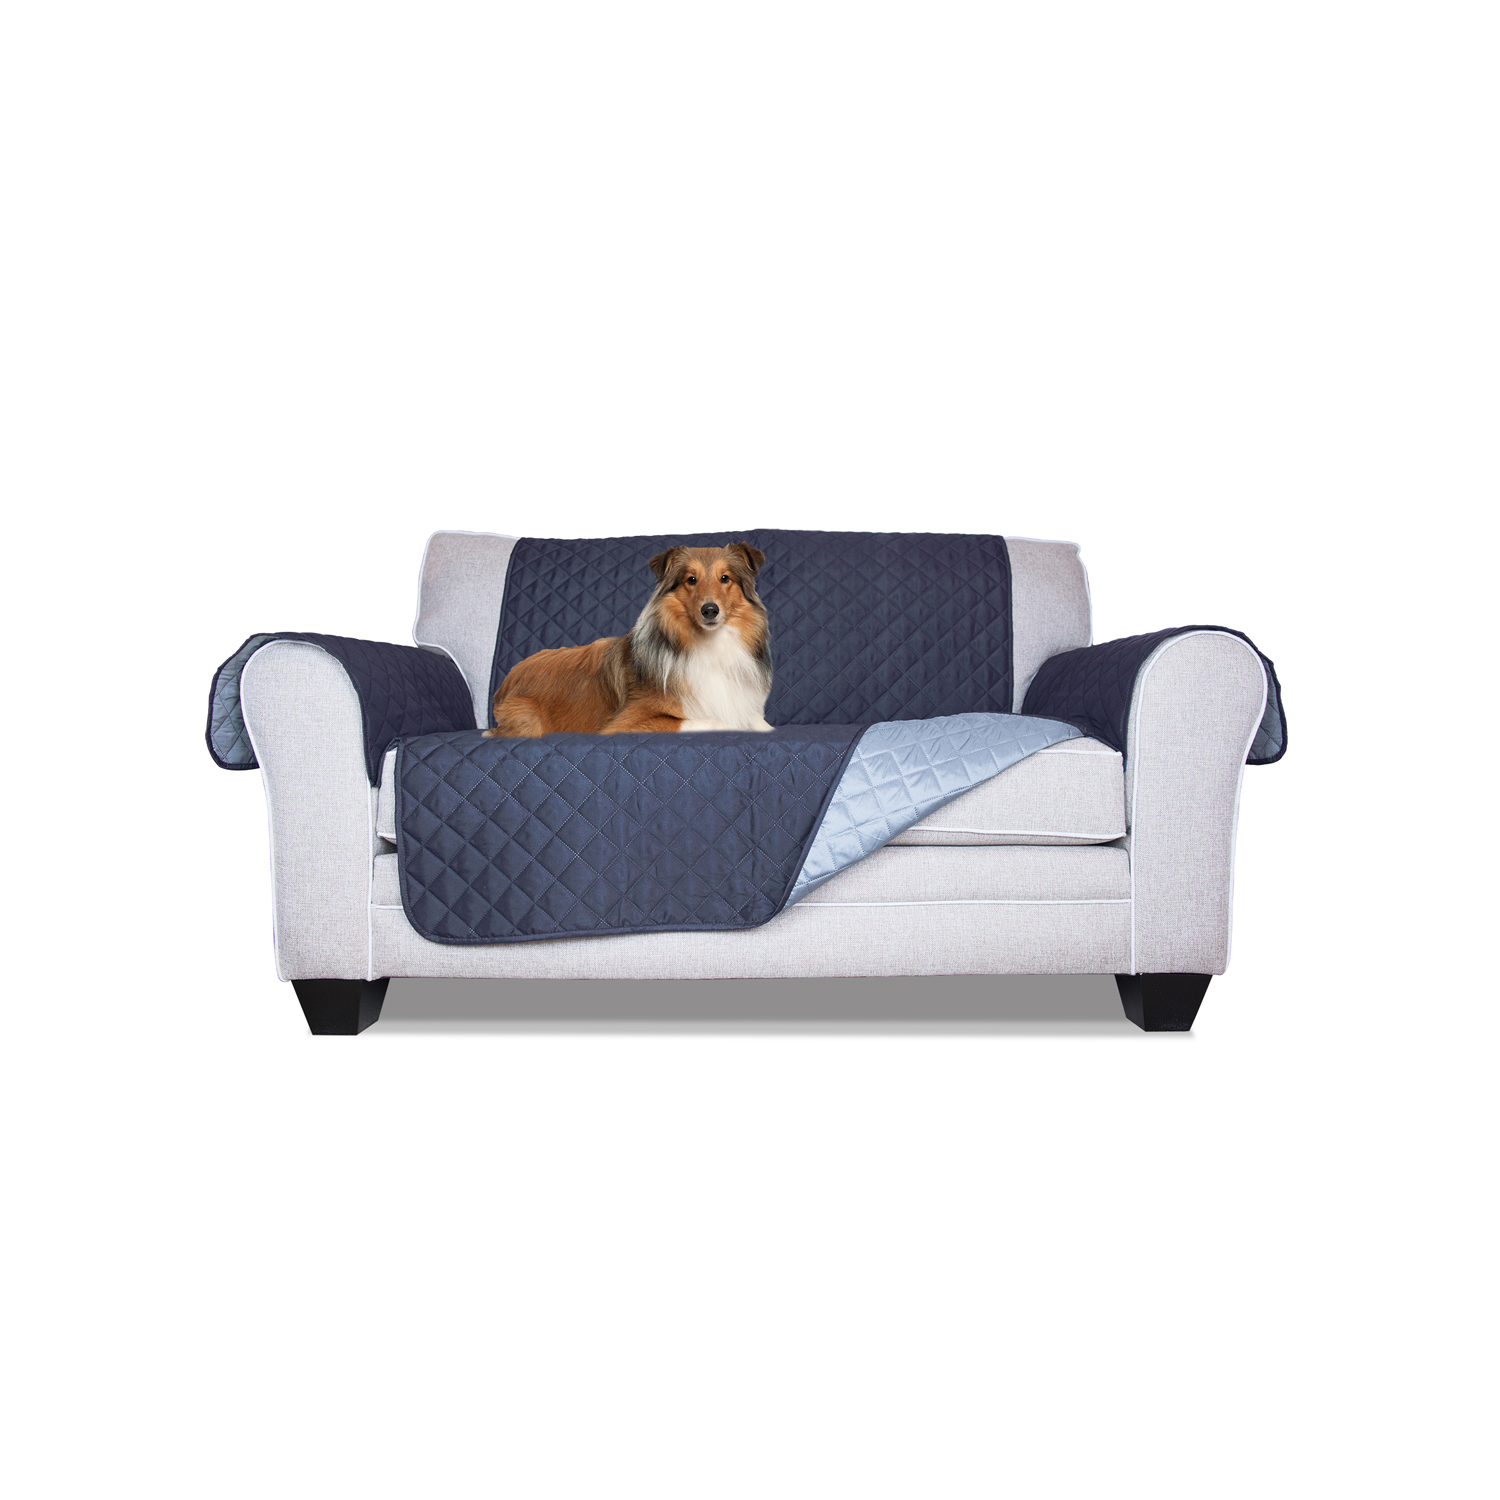 Navy/Light Blue Reversible Loveseat Protector